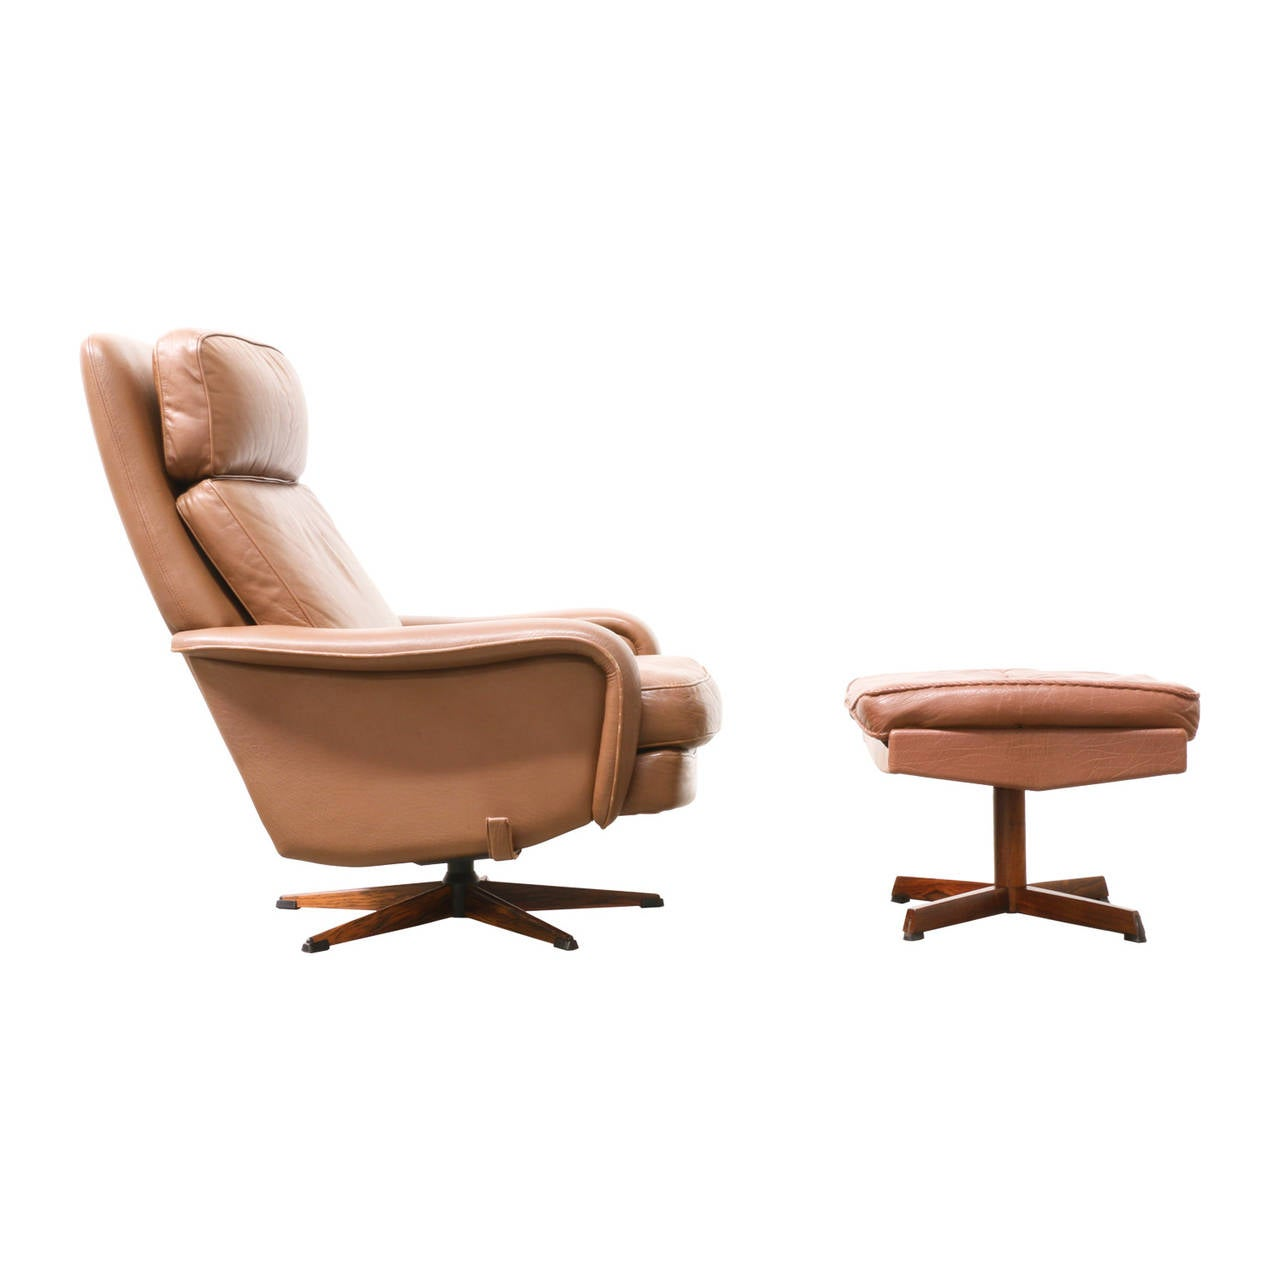 Danish modern leather lounge chair with ottoman at 1stdibs for Modern leather chair